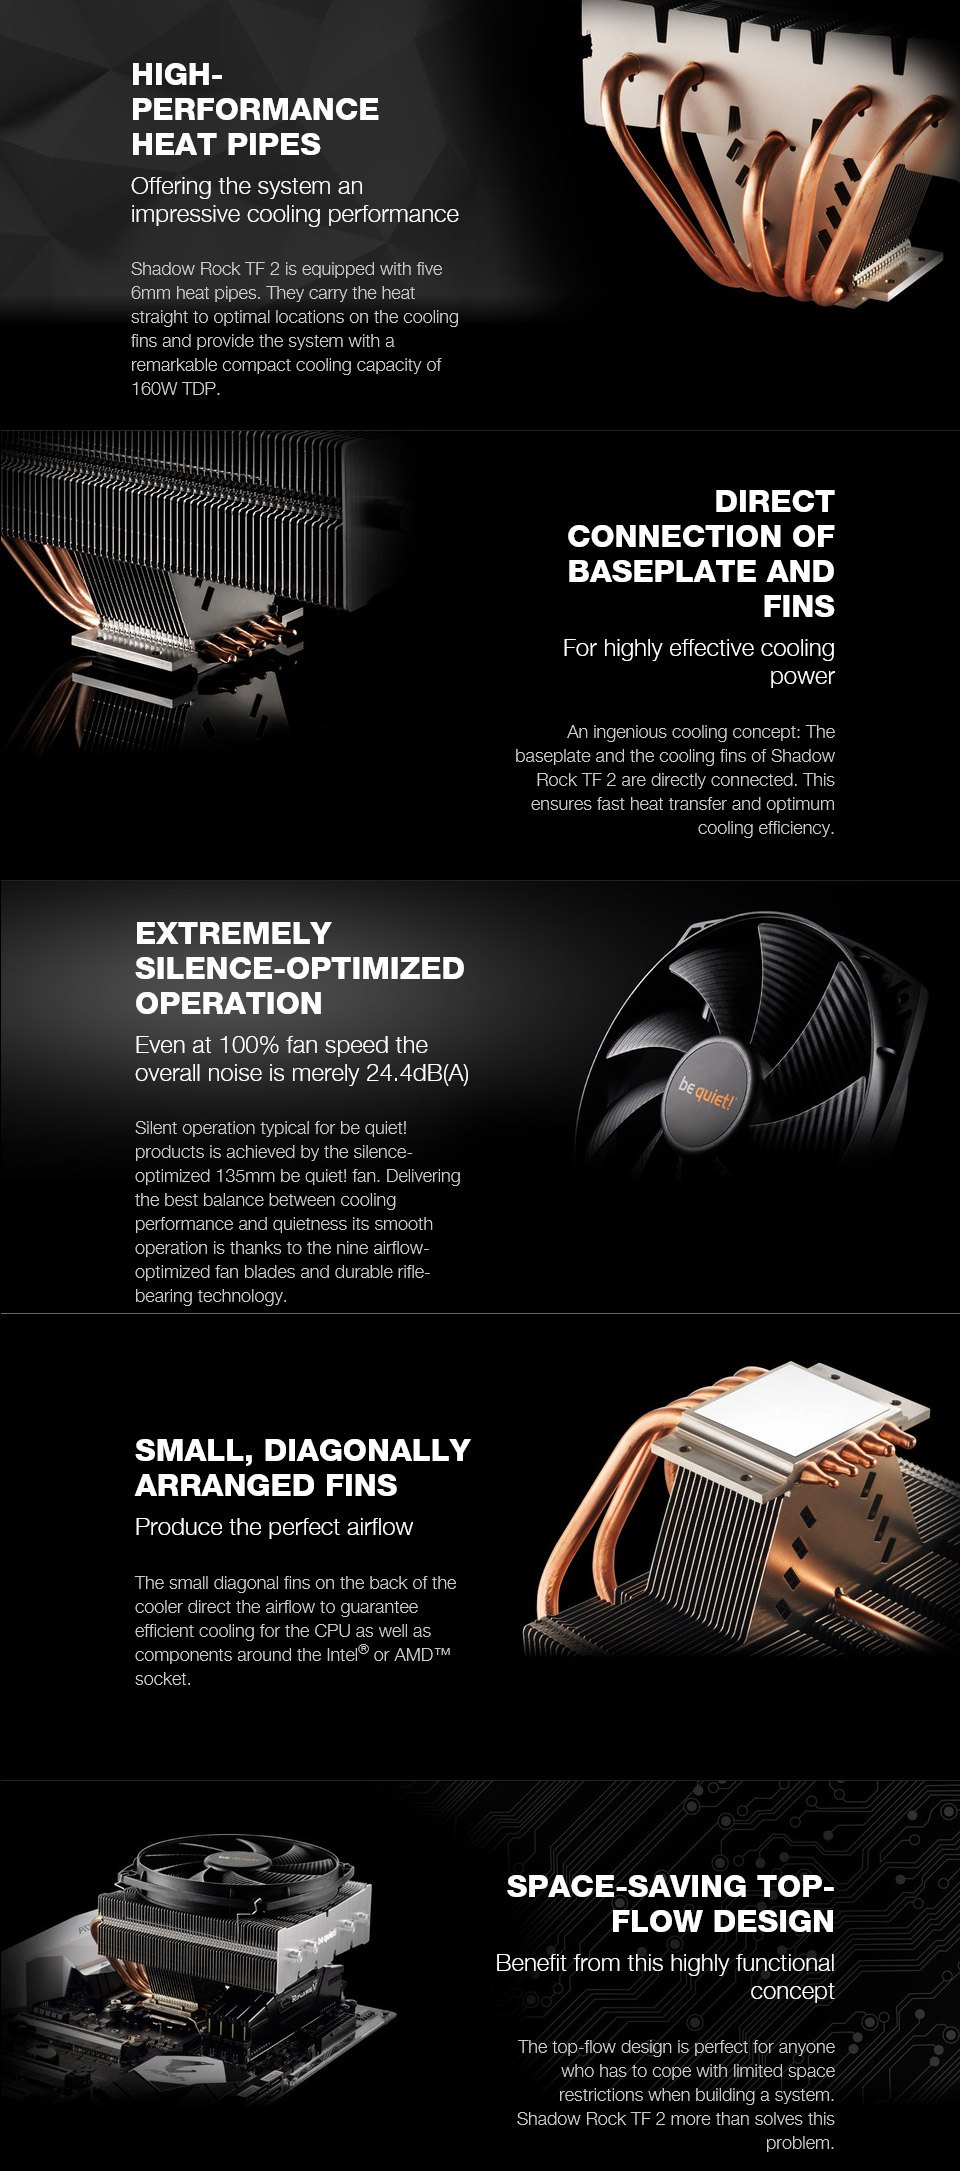 be quiet! Shadow Rock TF 2 CPU Cooler features